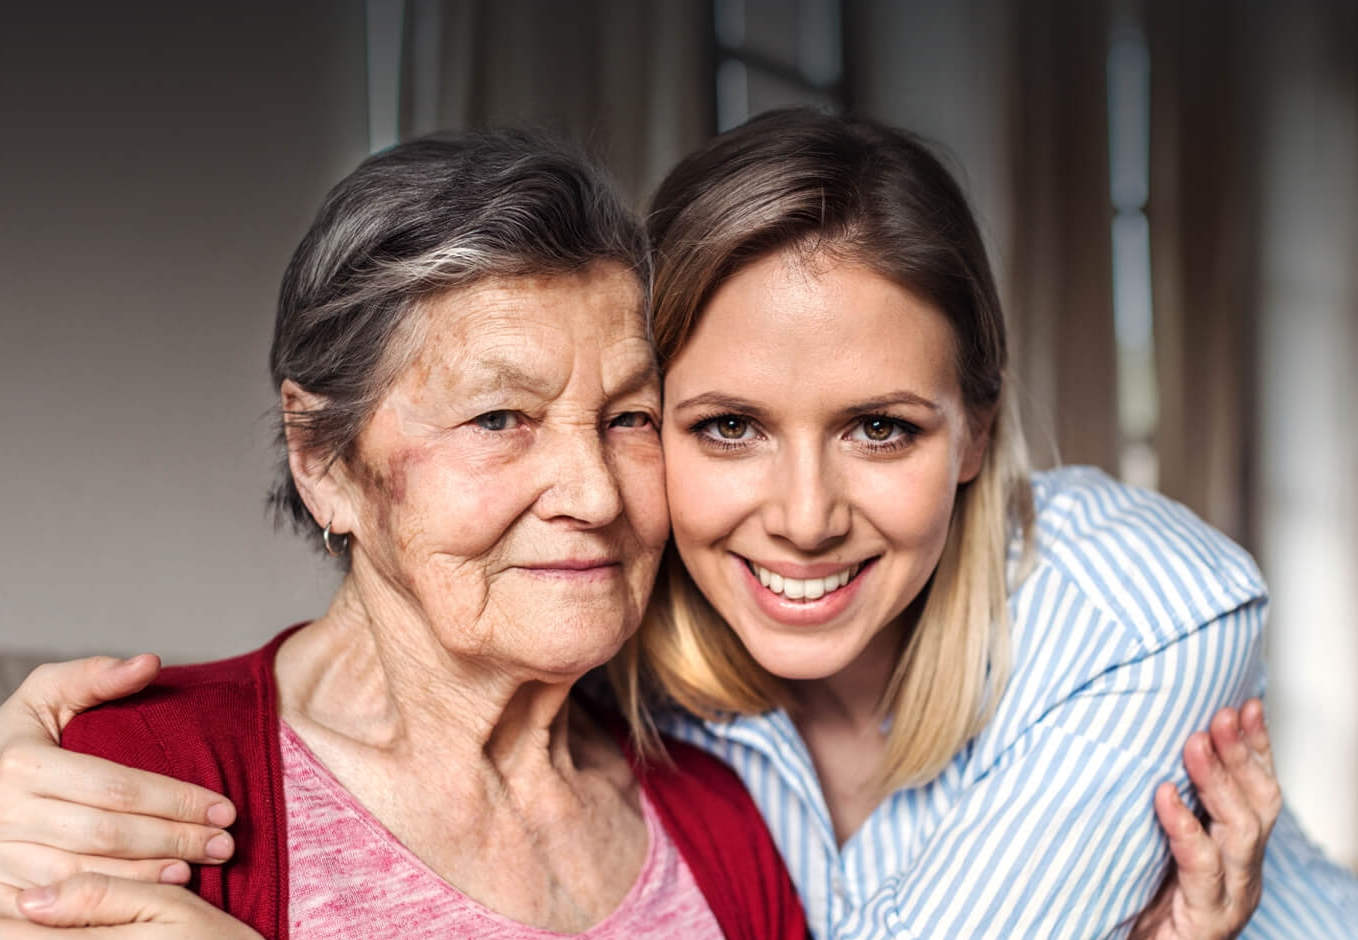 care-payments-aged-care-and-NDIS-2.jpg